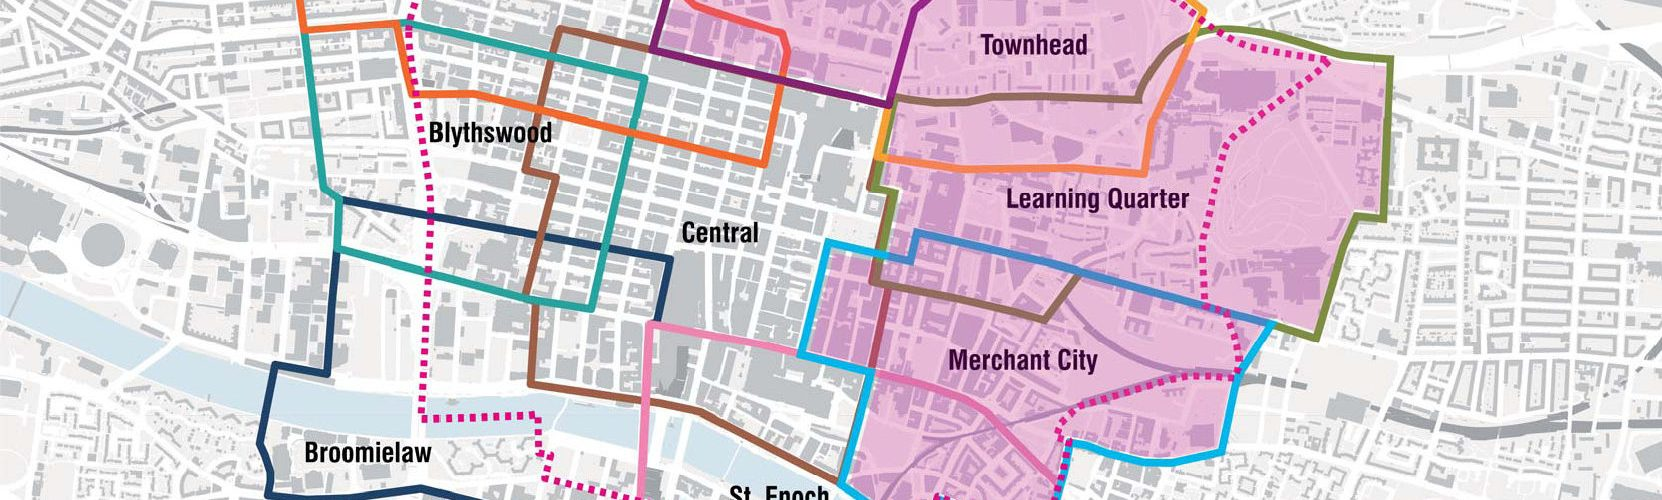 (Y)our City Centre Districts Base Map